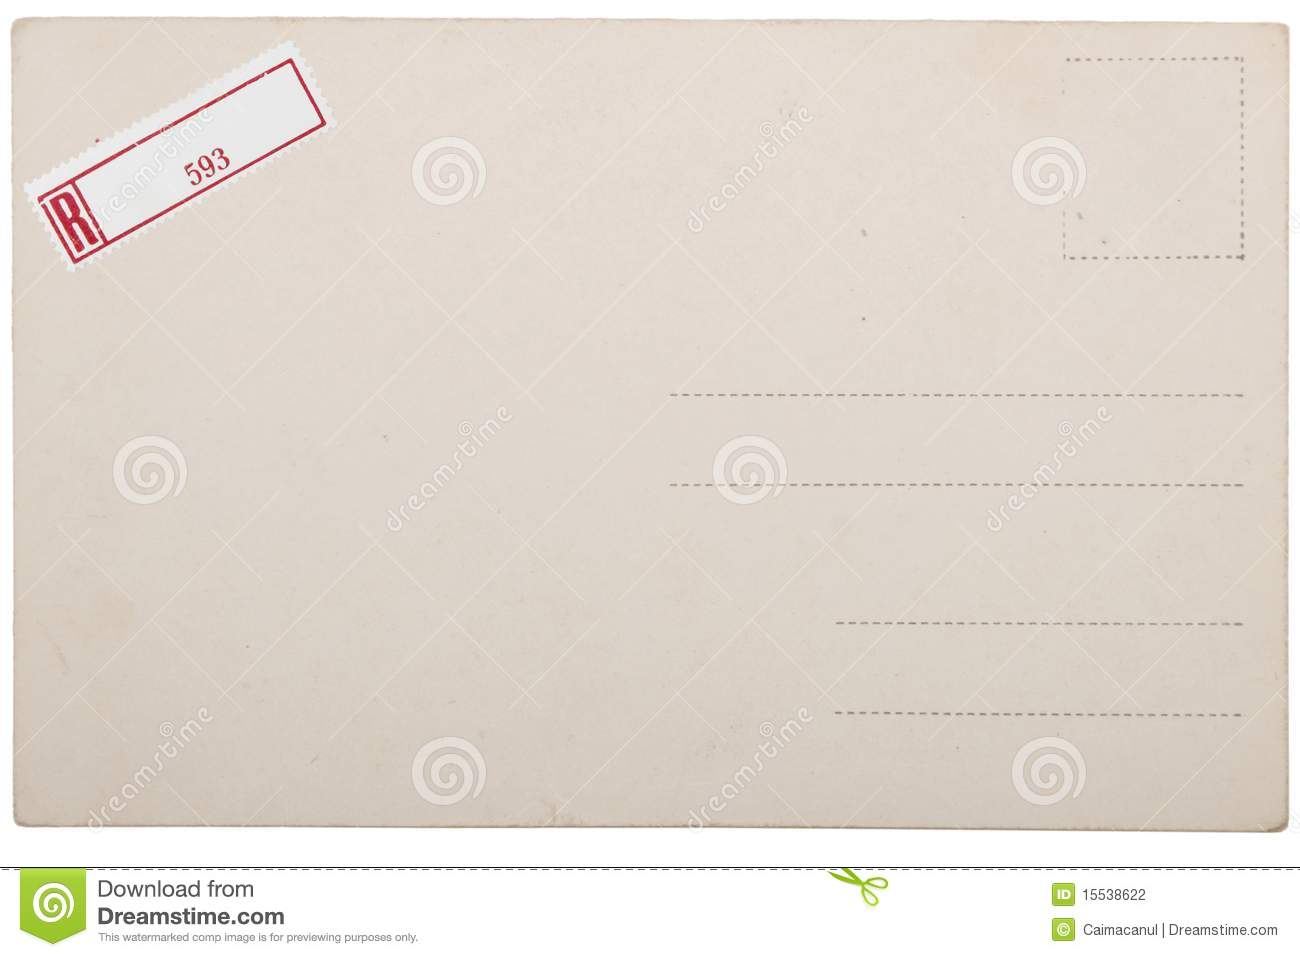 postcard paper stock Glossy inkjet paper for greeting card and announcement printing.